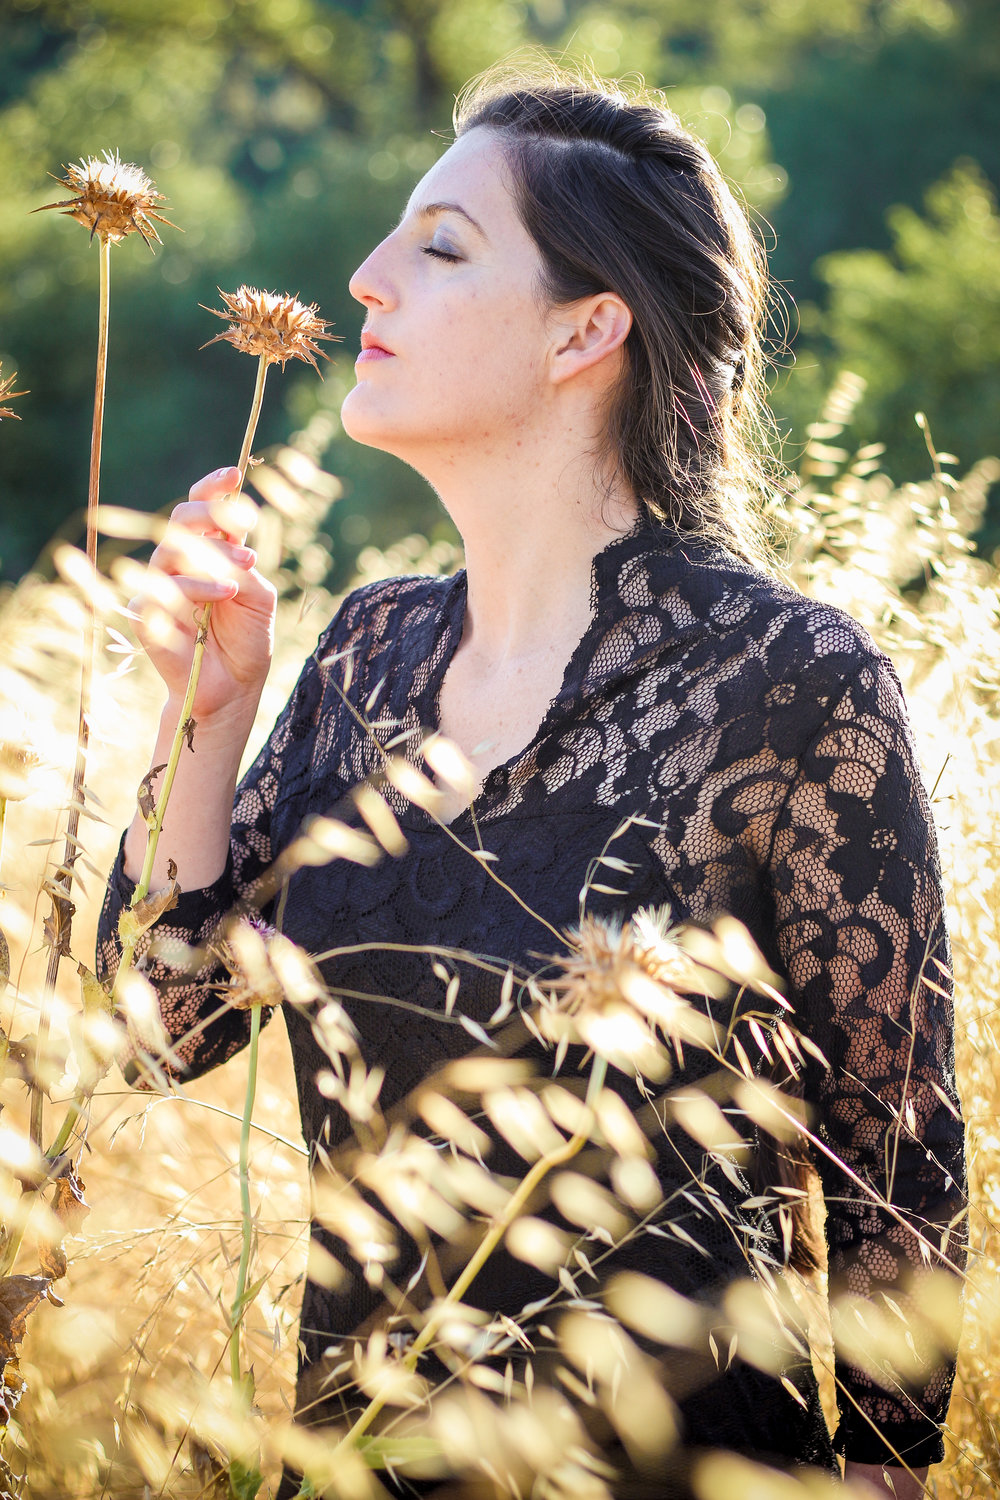 alexandra-rice-photography-quail-hollow-ranch-gothic-photoshoot-meadow-dead-field.jpg